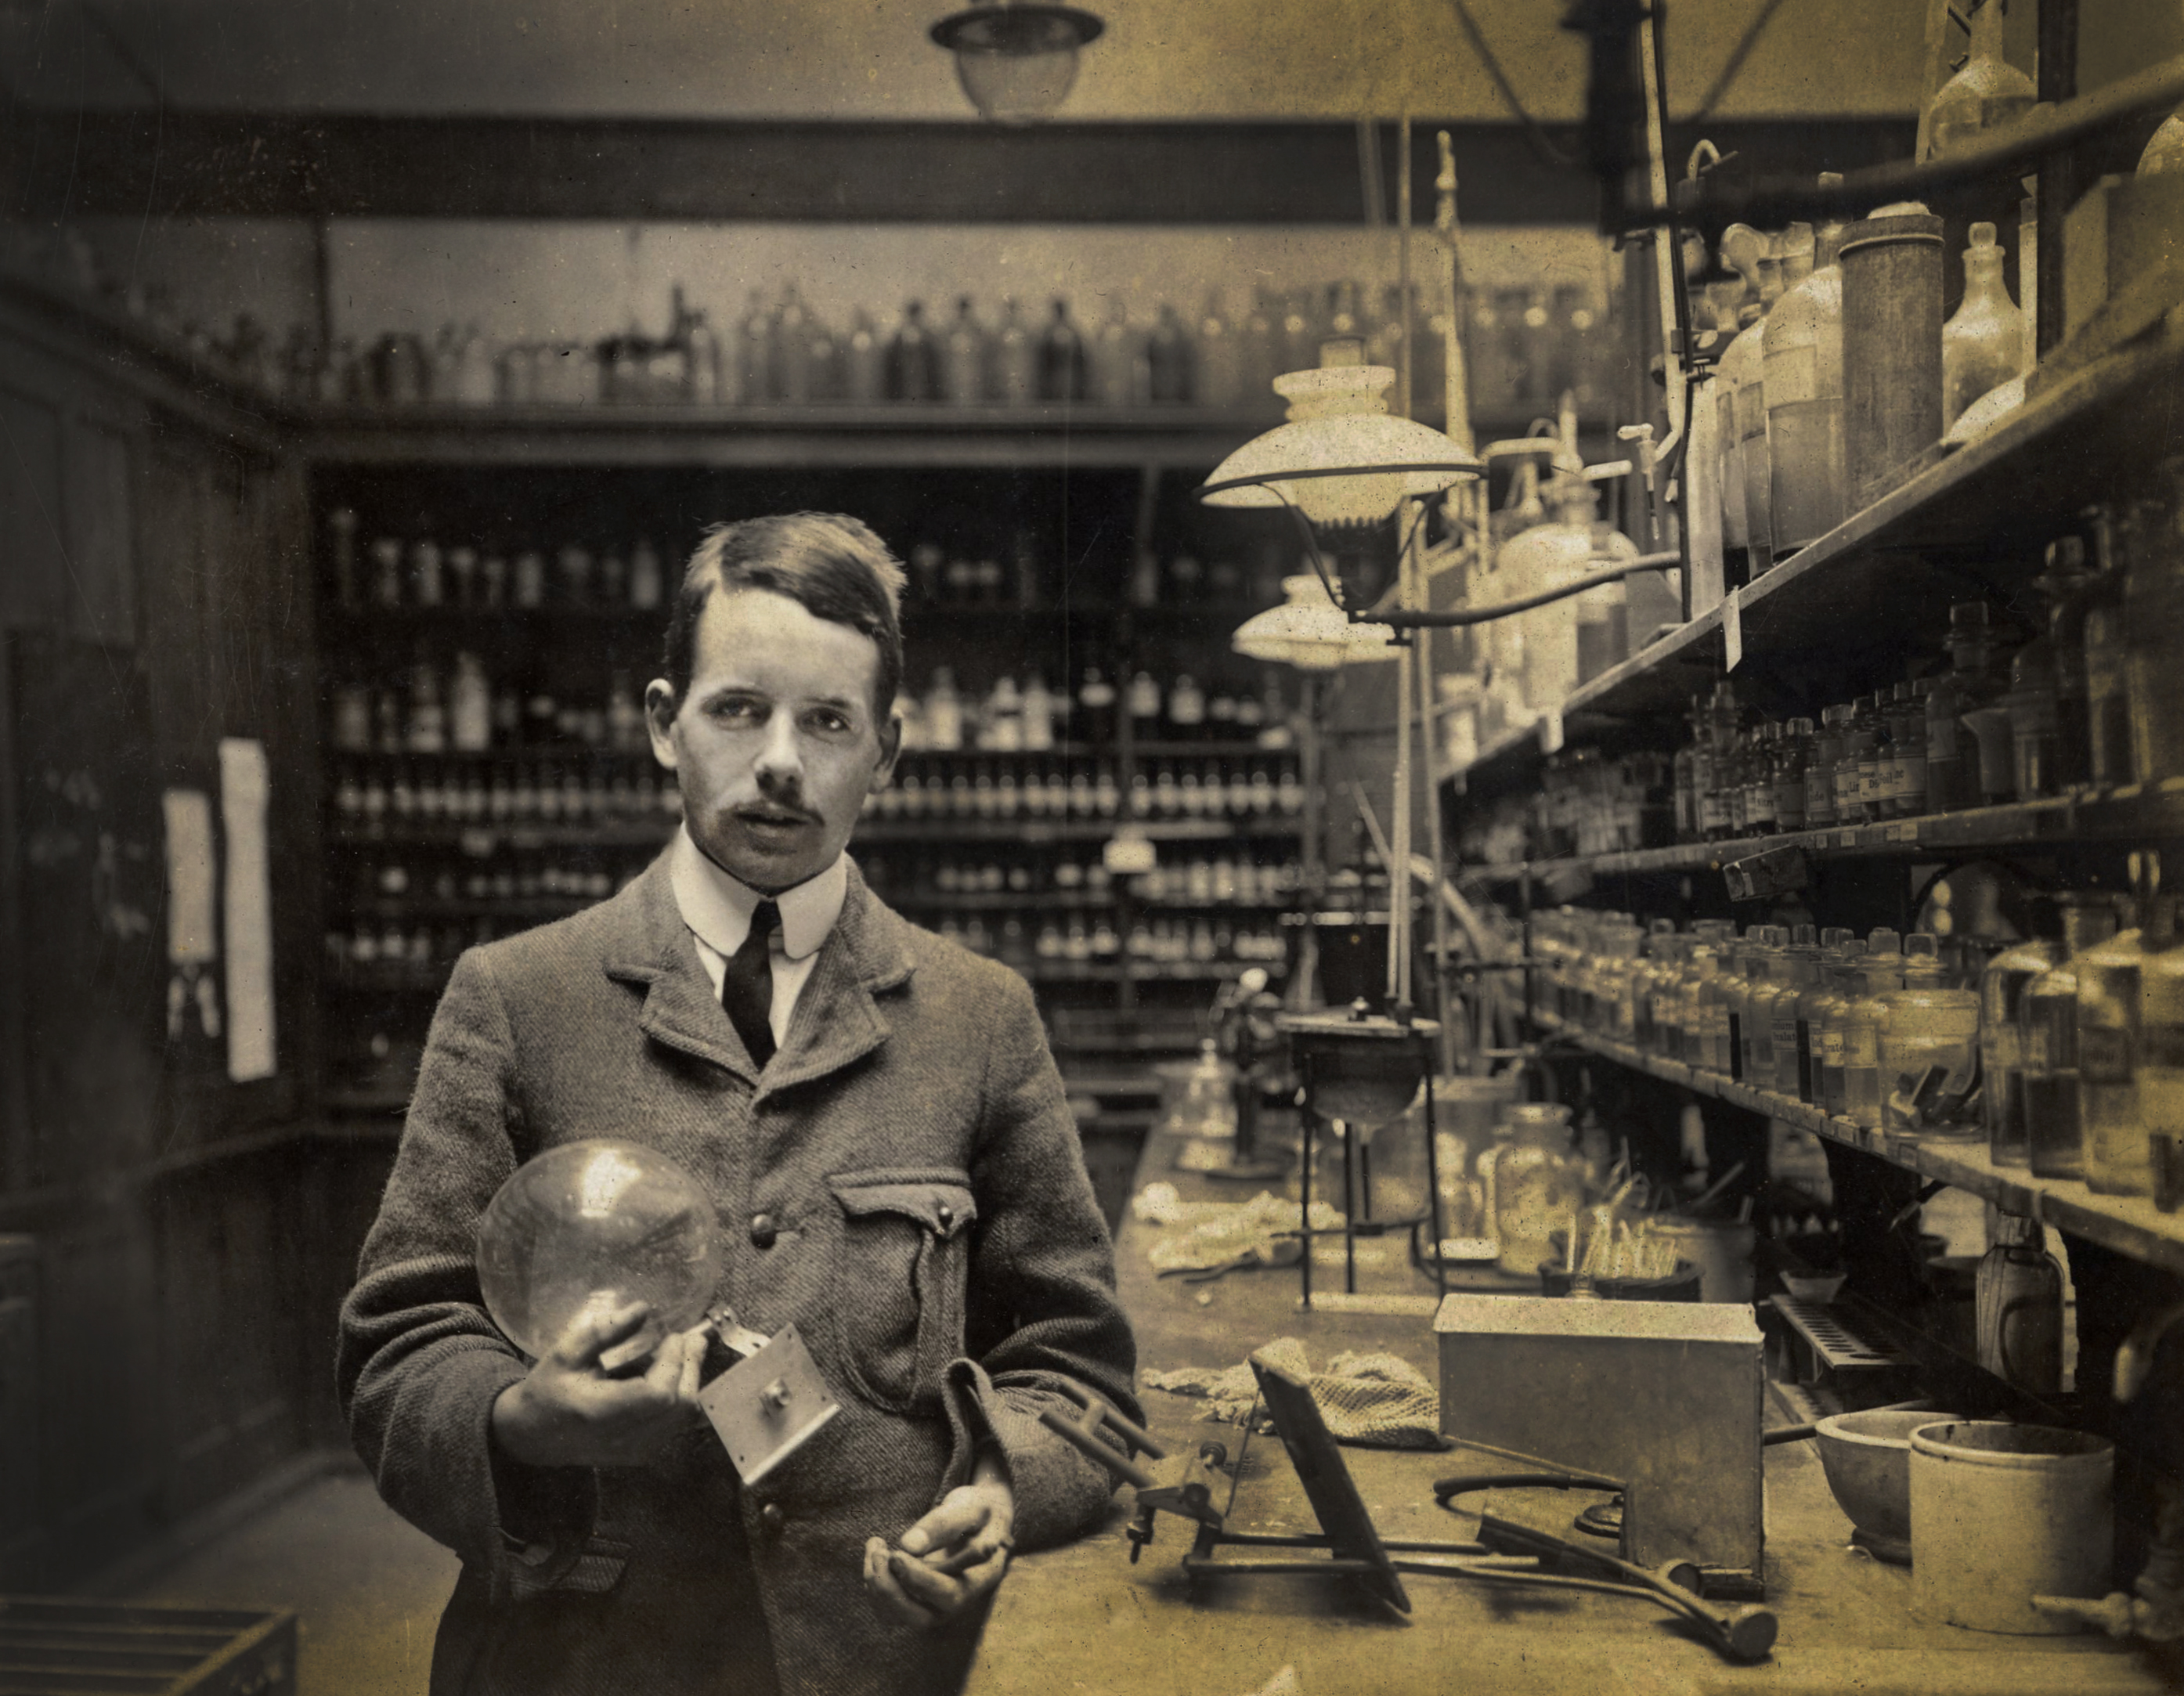 Henry moseley a scientist lost to war defence science 18874 moseleylaboratory ki 1 gamestrikefo Image collections